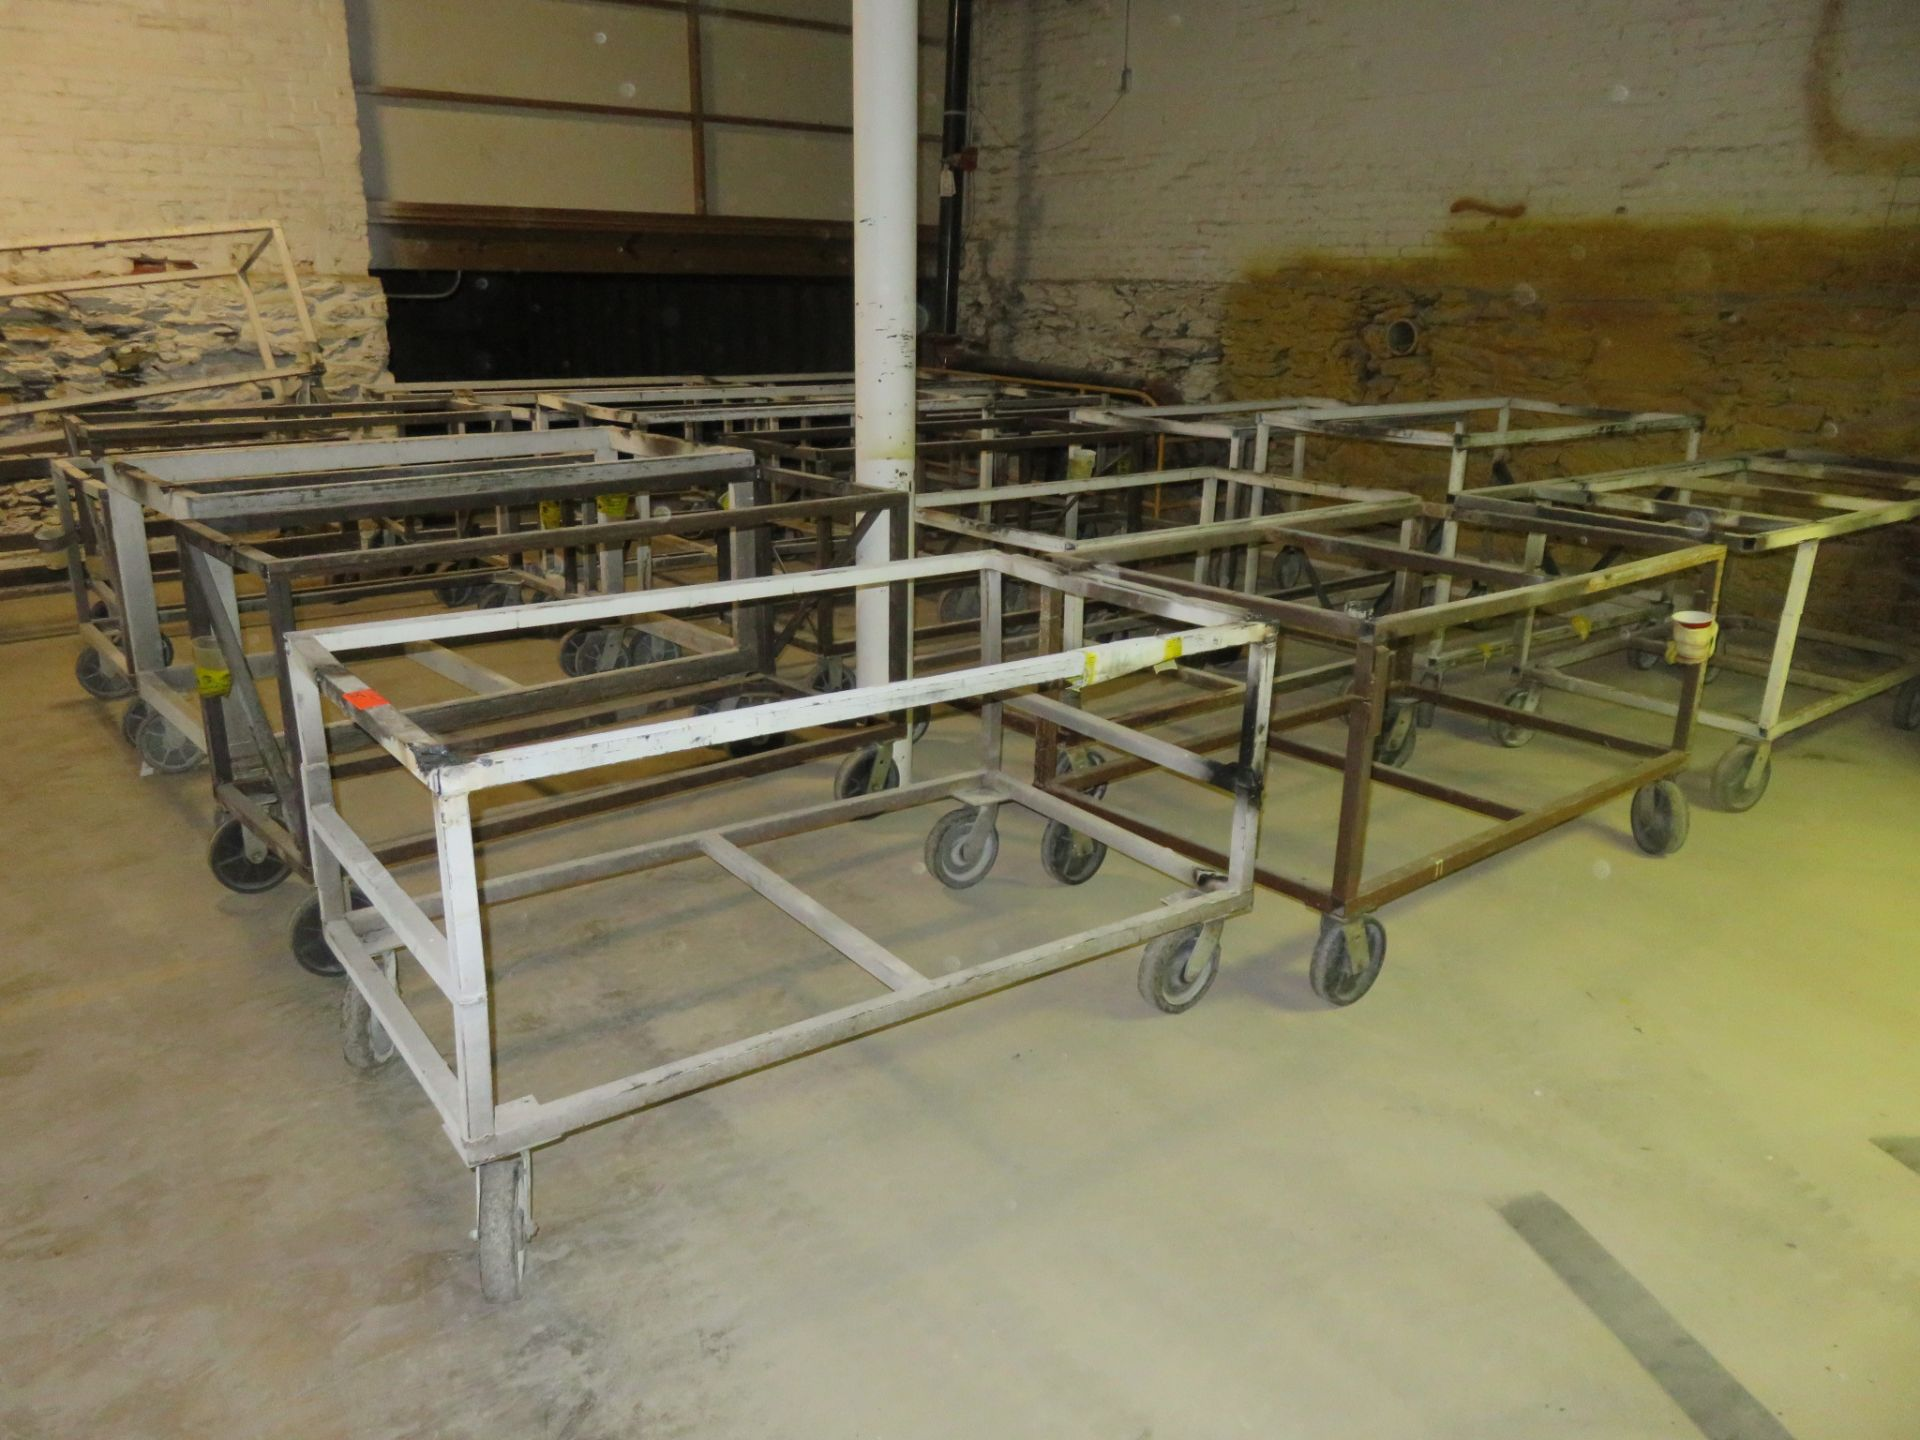 """Heavy Duty Rolling Carts Lot of 19 approx. 64""""x 36""""x 34"""" - Image 3 of 4"""